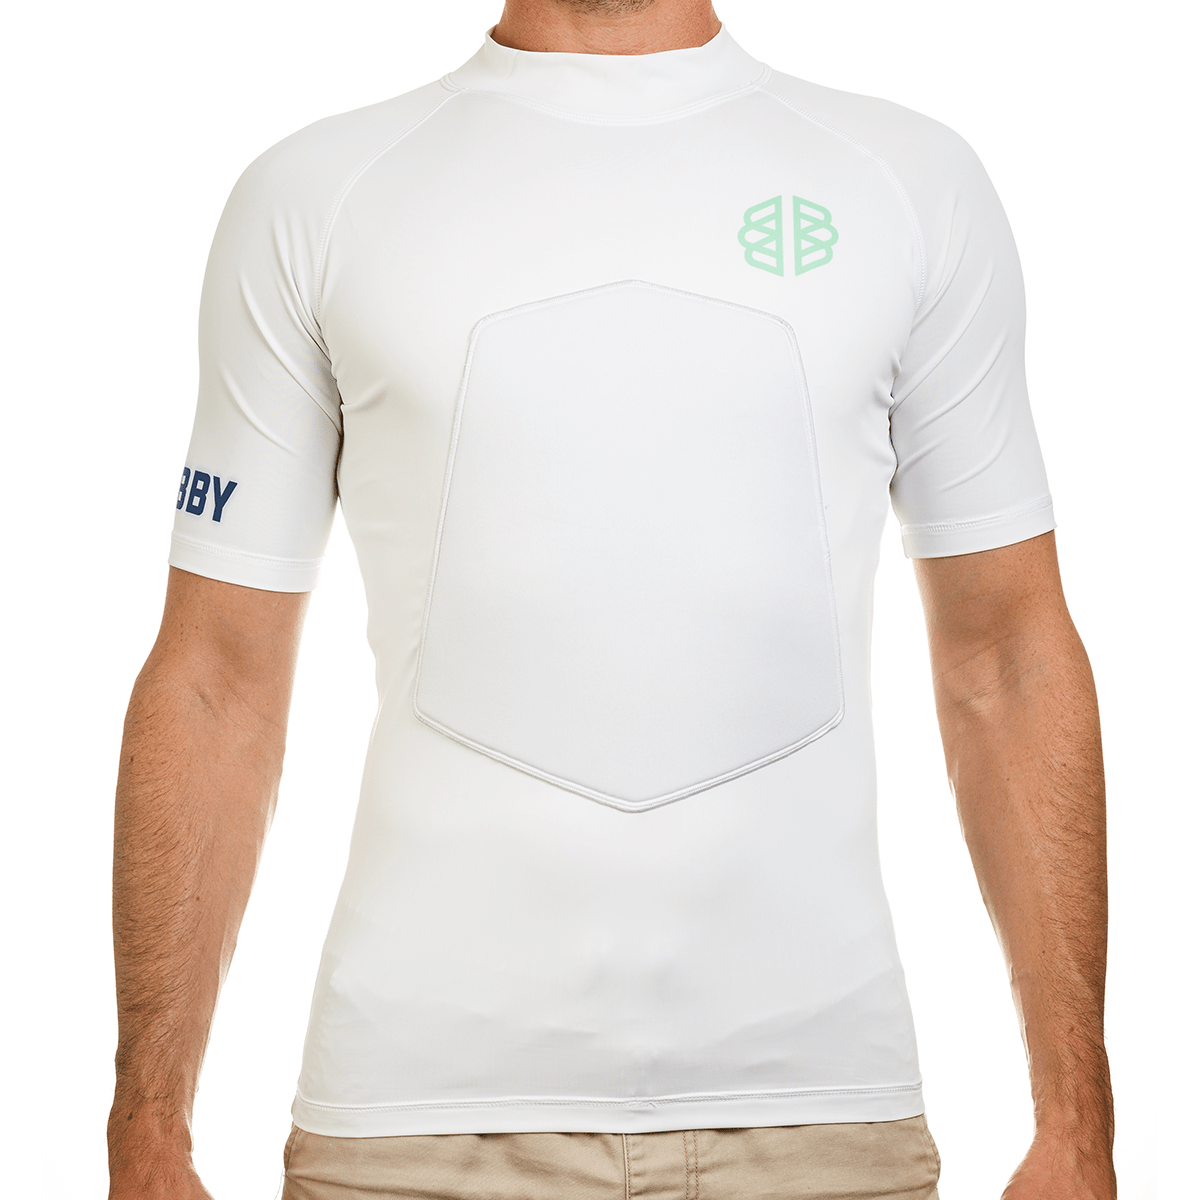 Ribby - Short Sleeve white padded rash guard